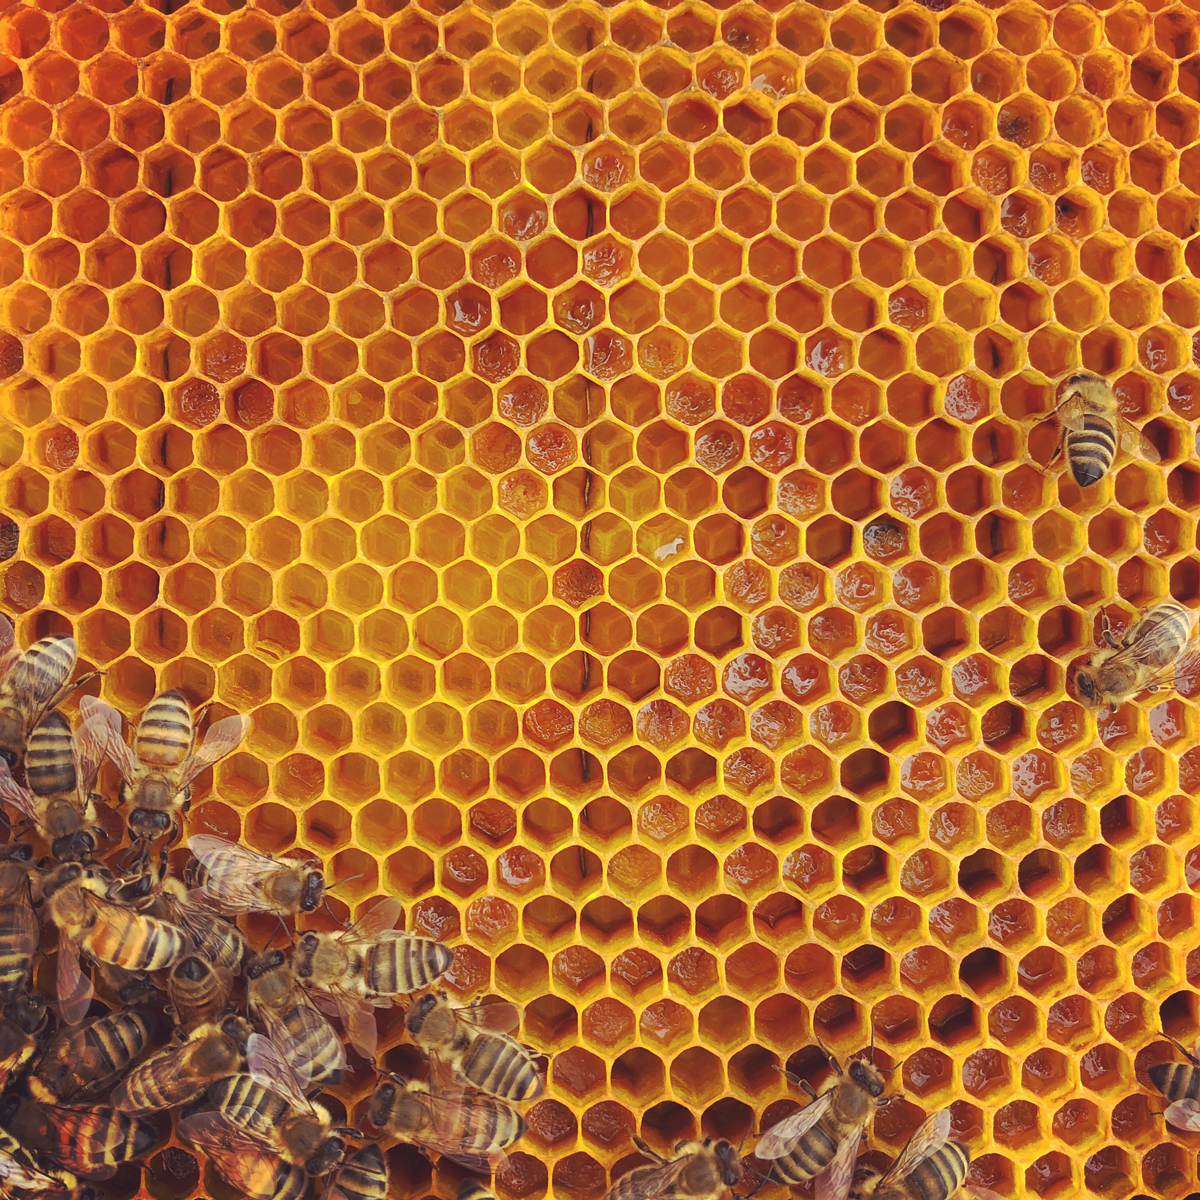 Image of honeybees on a bee frame of honeycomb